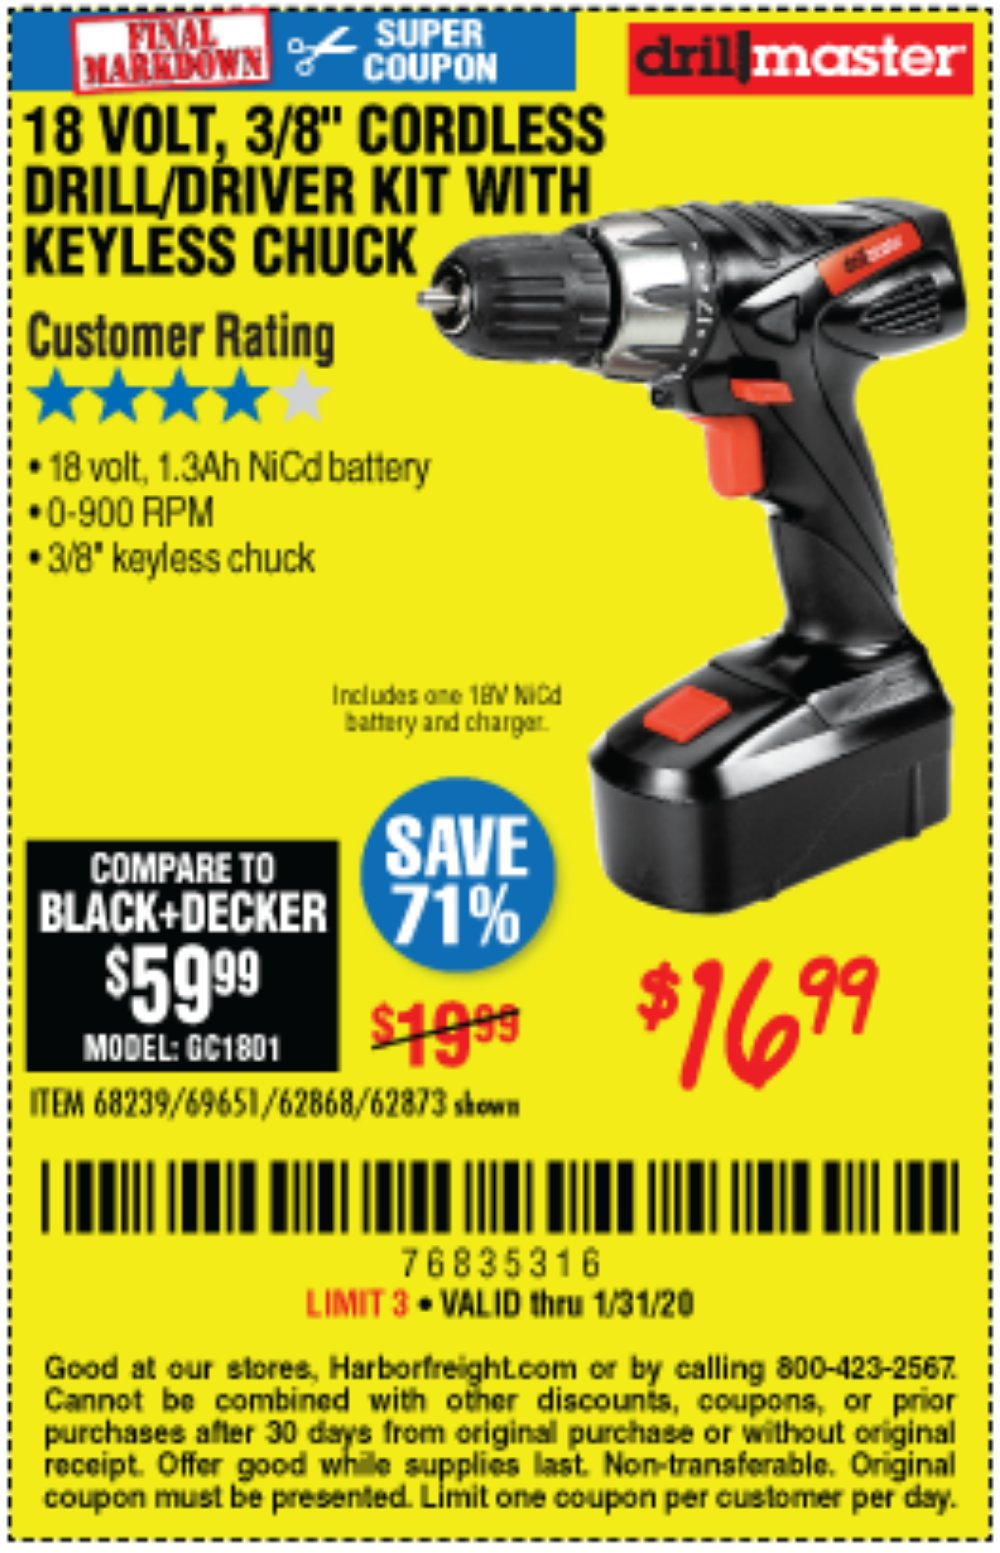 Harbor Freight Coupon, HF Coupons - 18 Volt Cordless 3/8